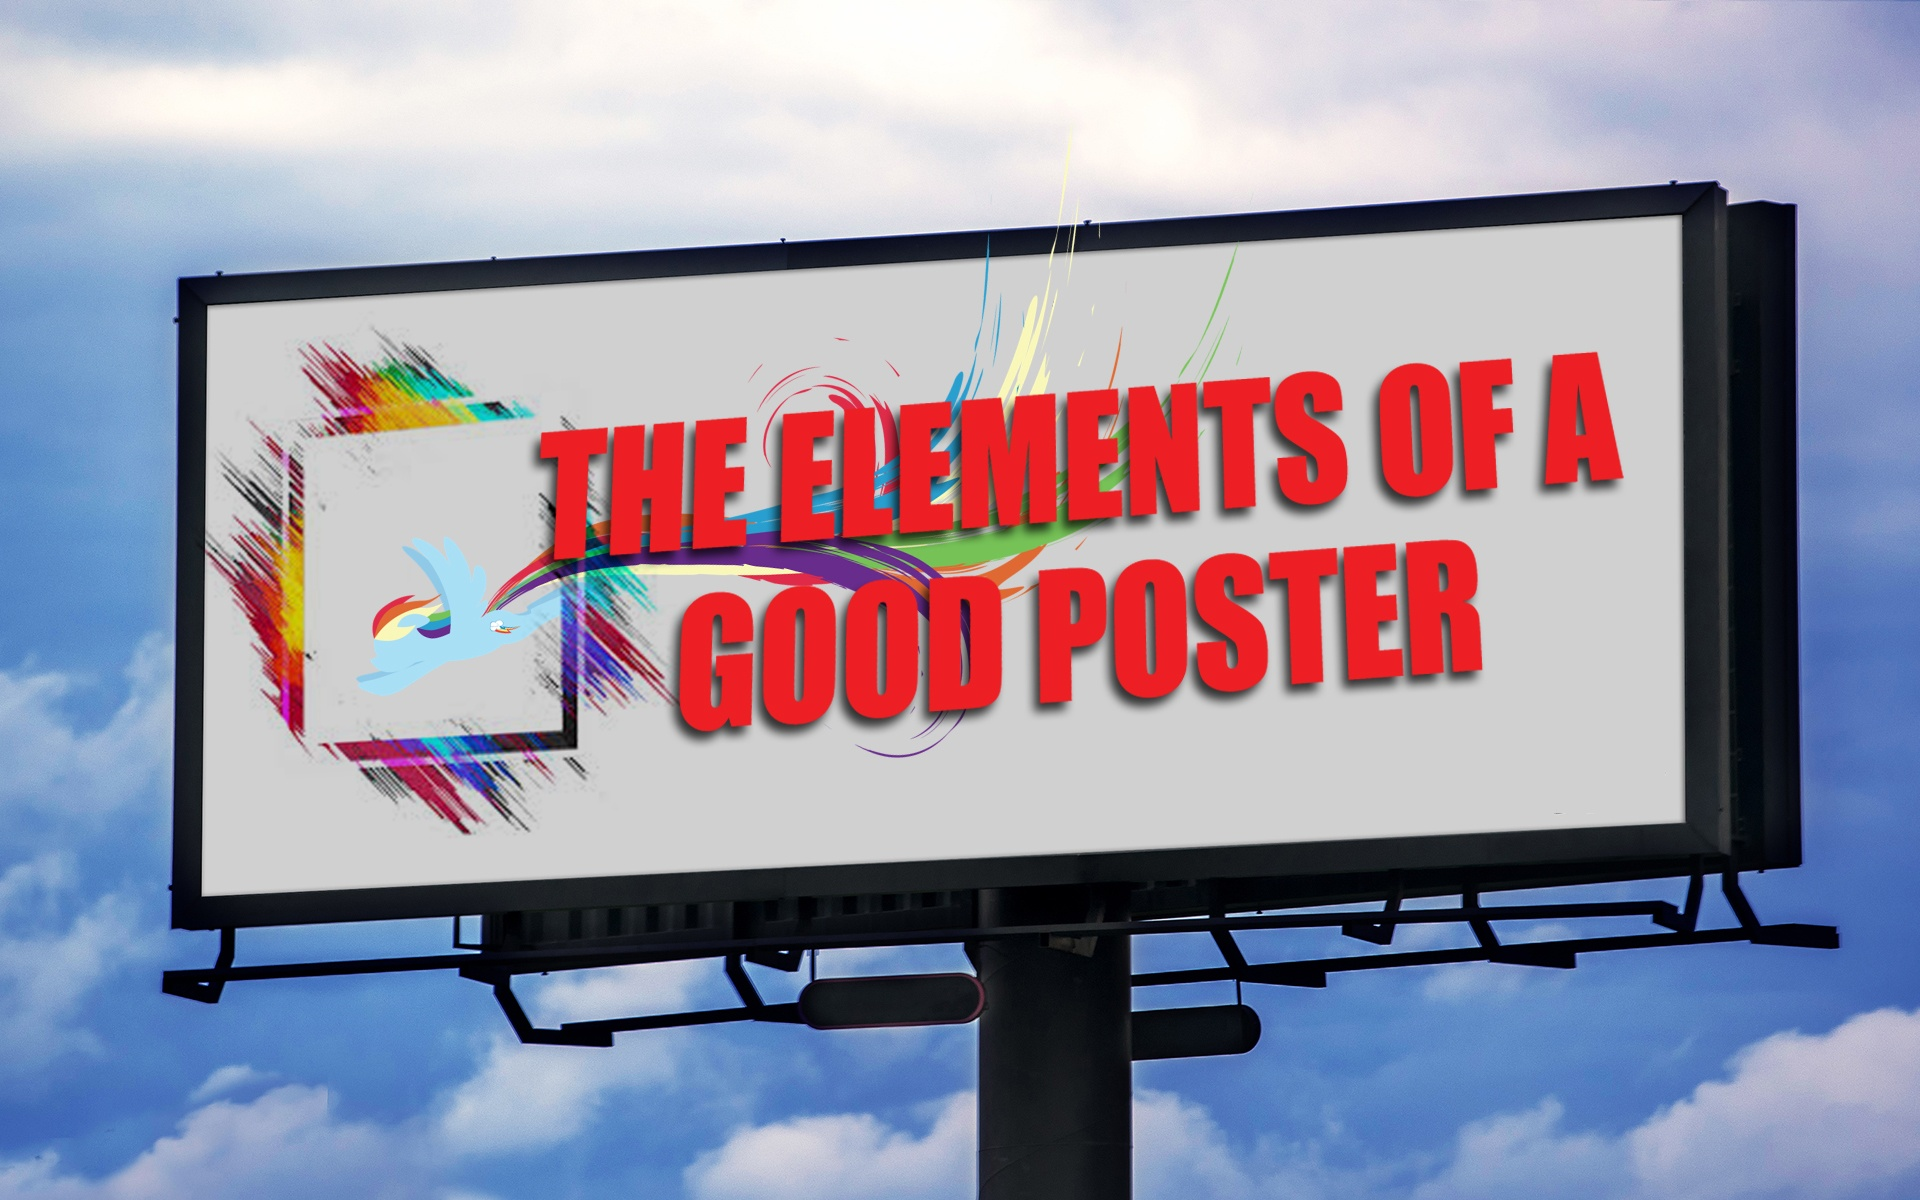 The Elements of a Good Poster